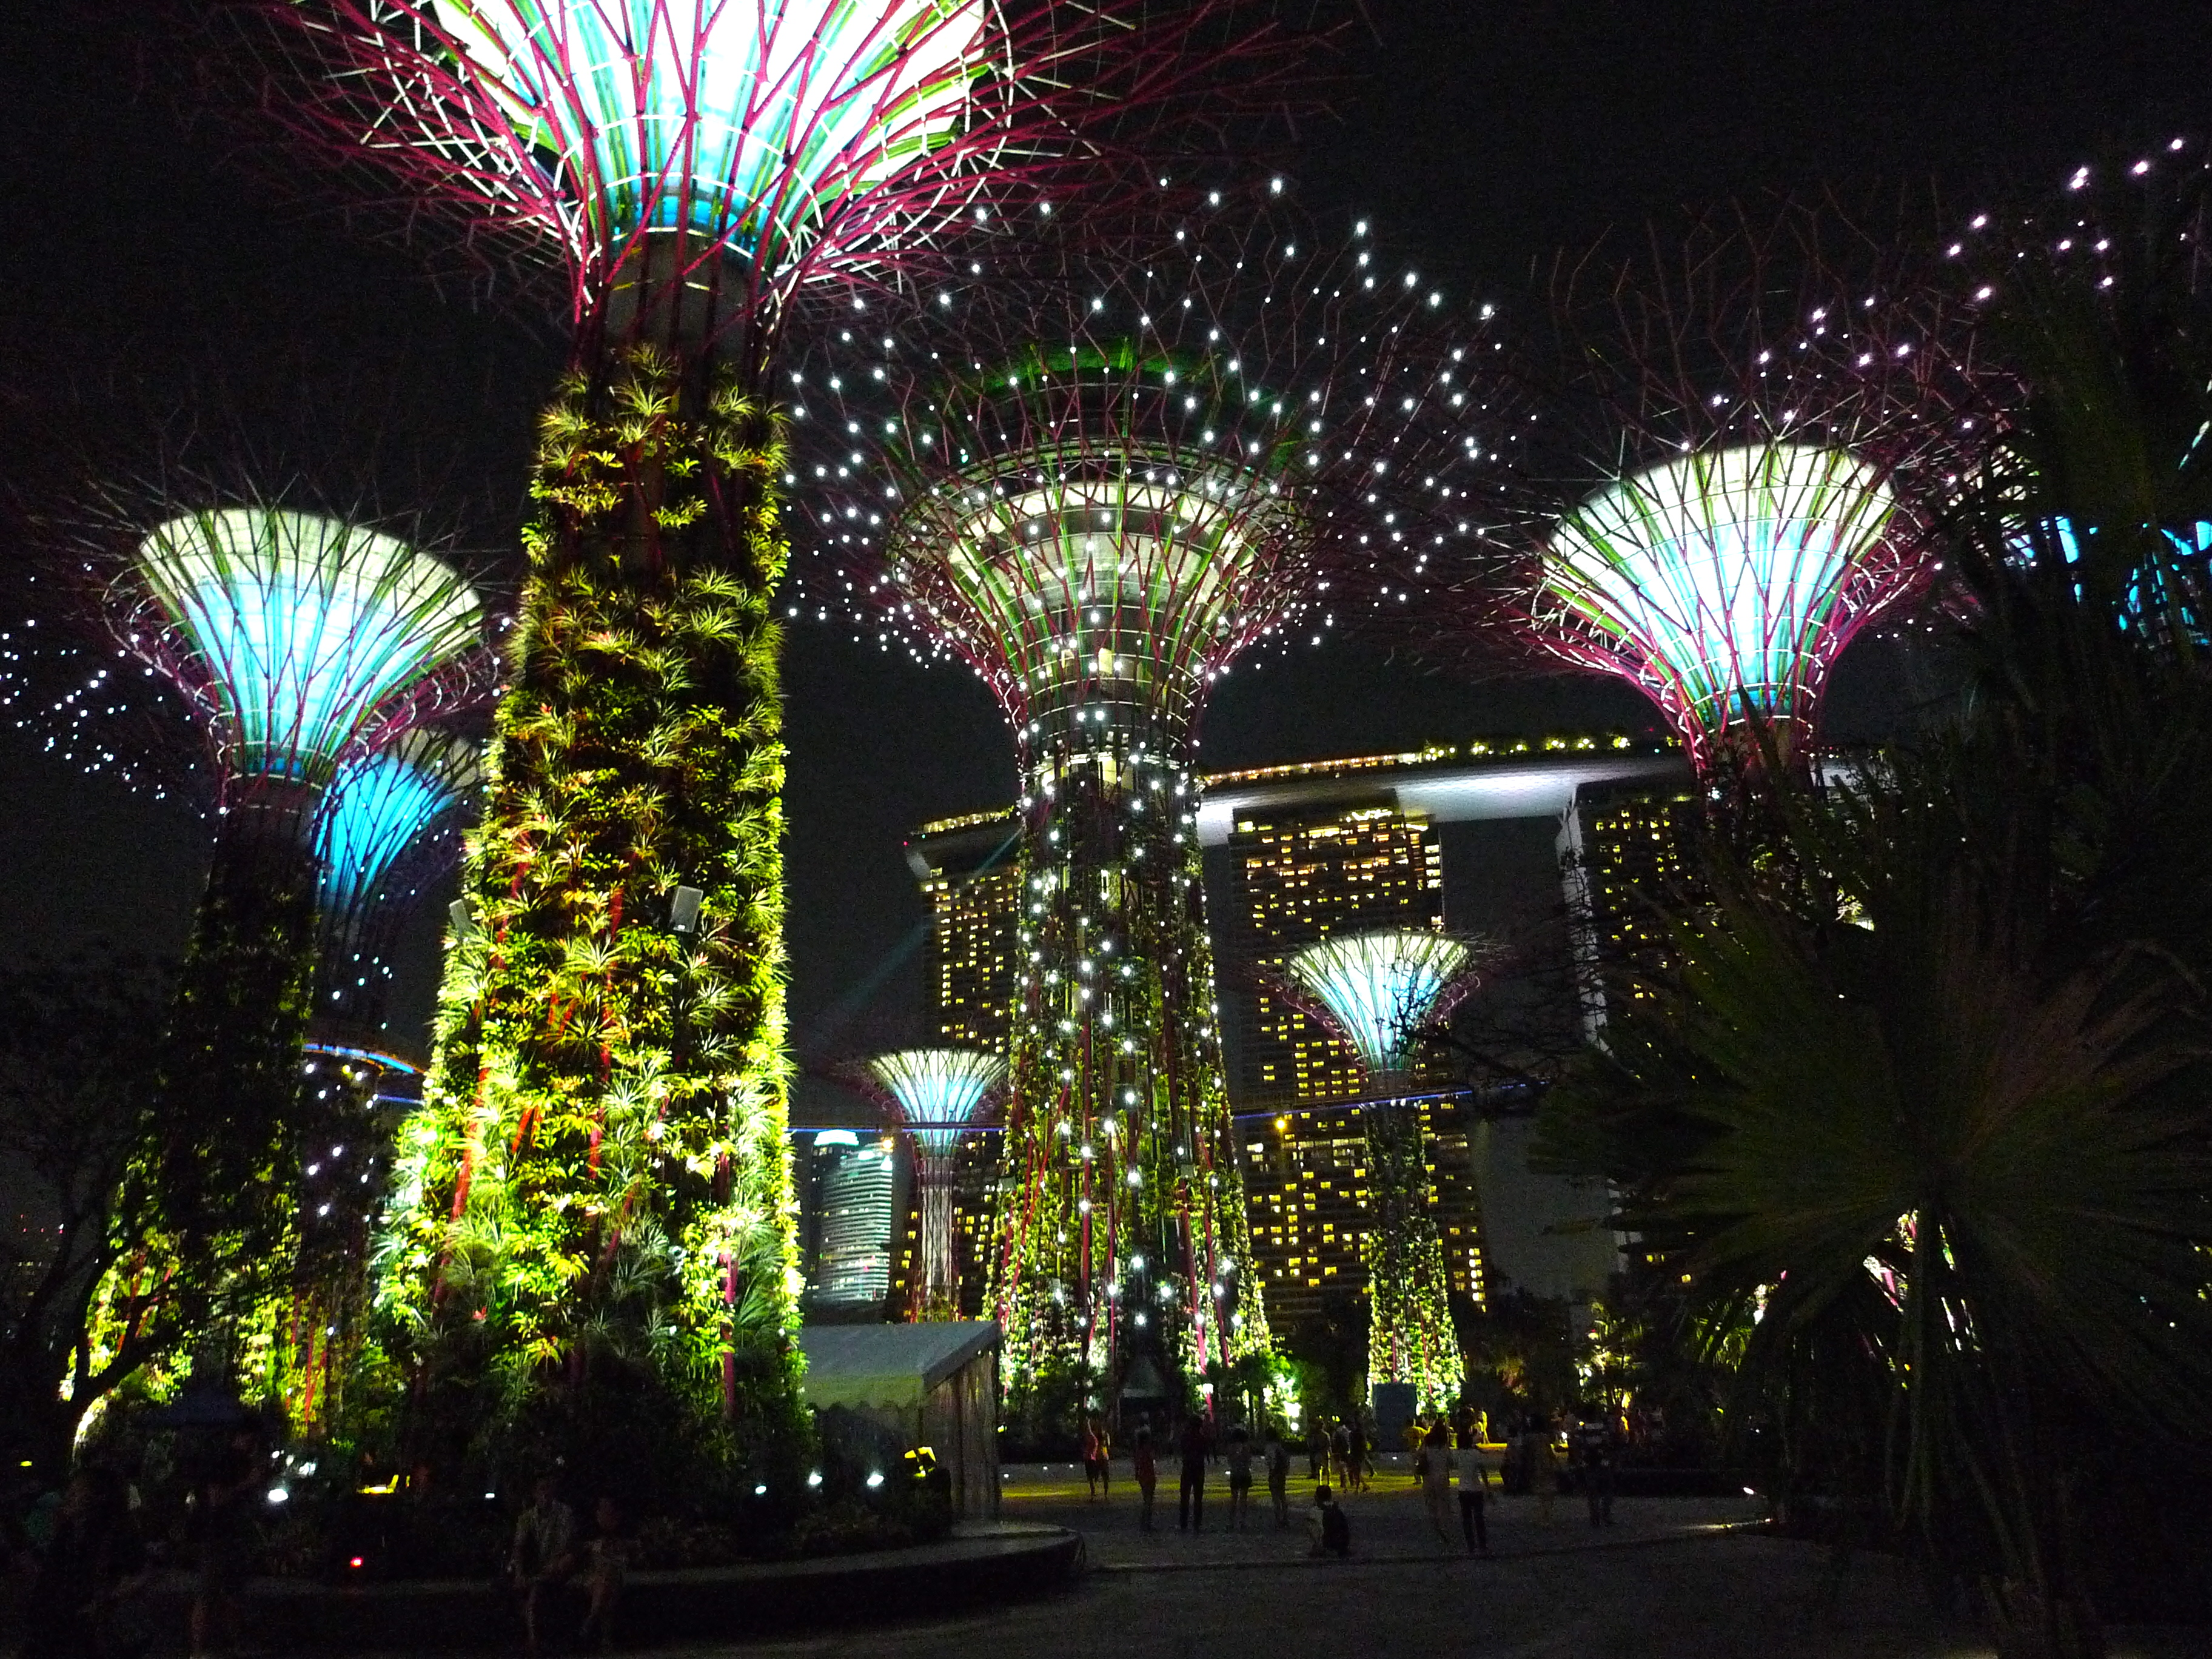 Supertree_Grove,_Gardens_by_the_Bay,_Singapore_-_20120630-04